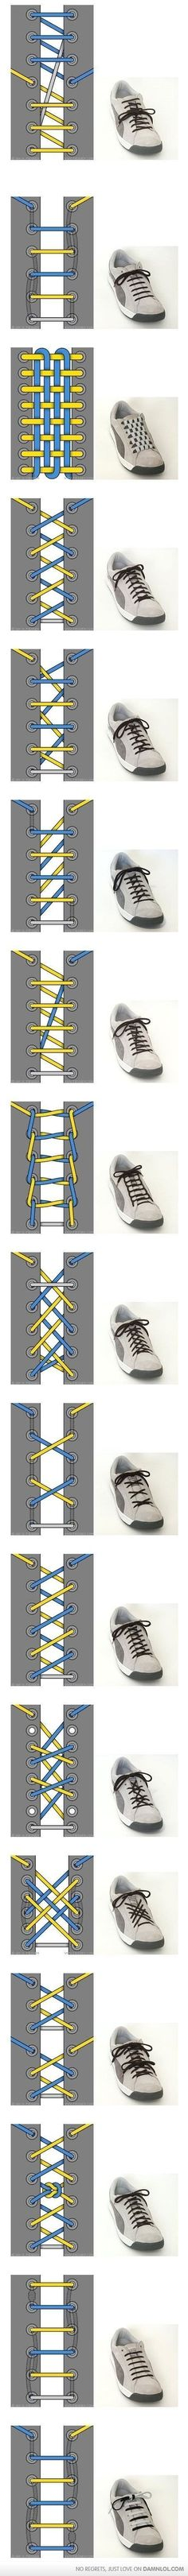 cool ways to tie your shoe laces